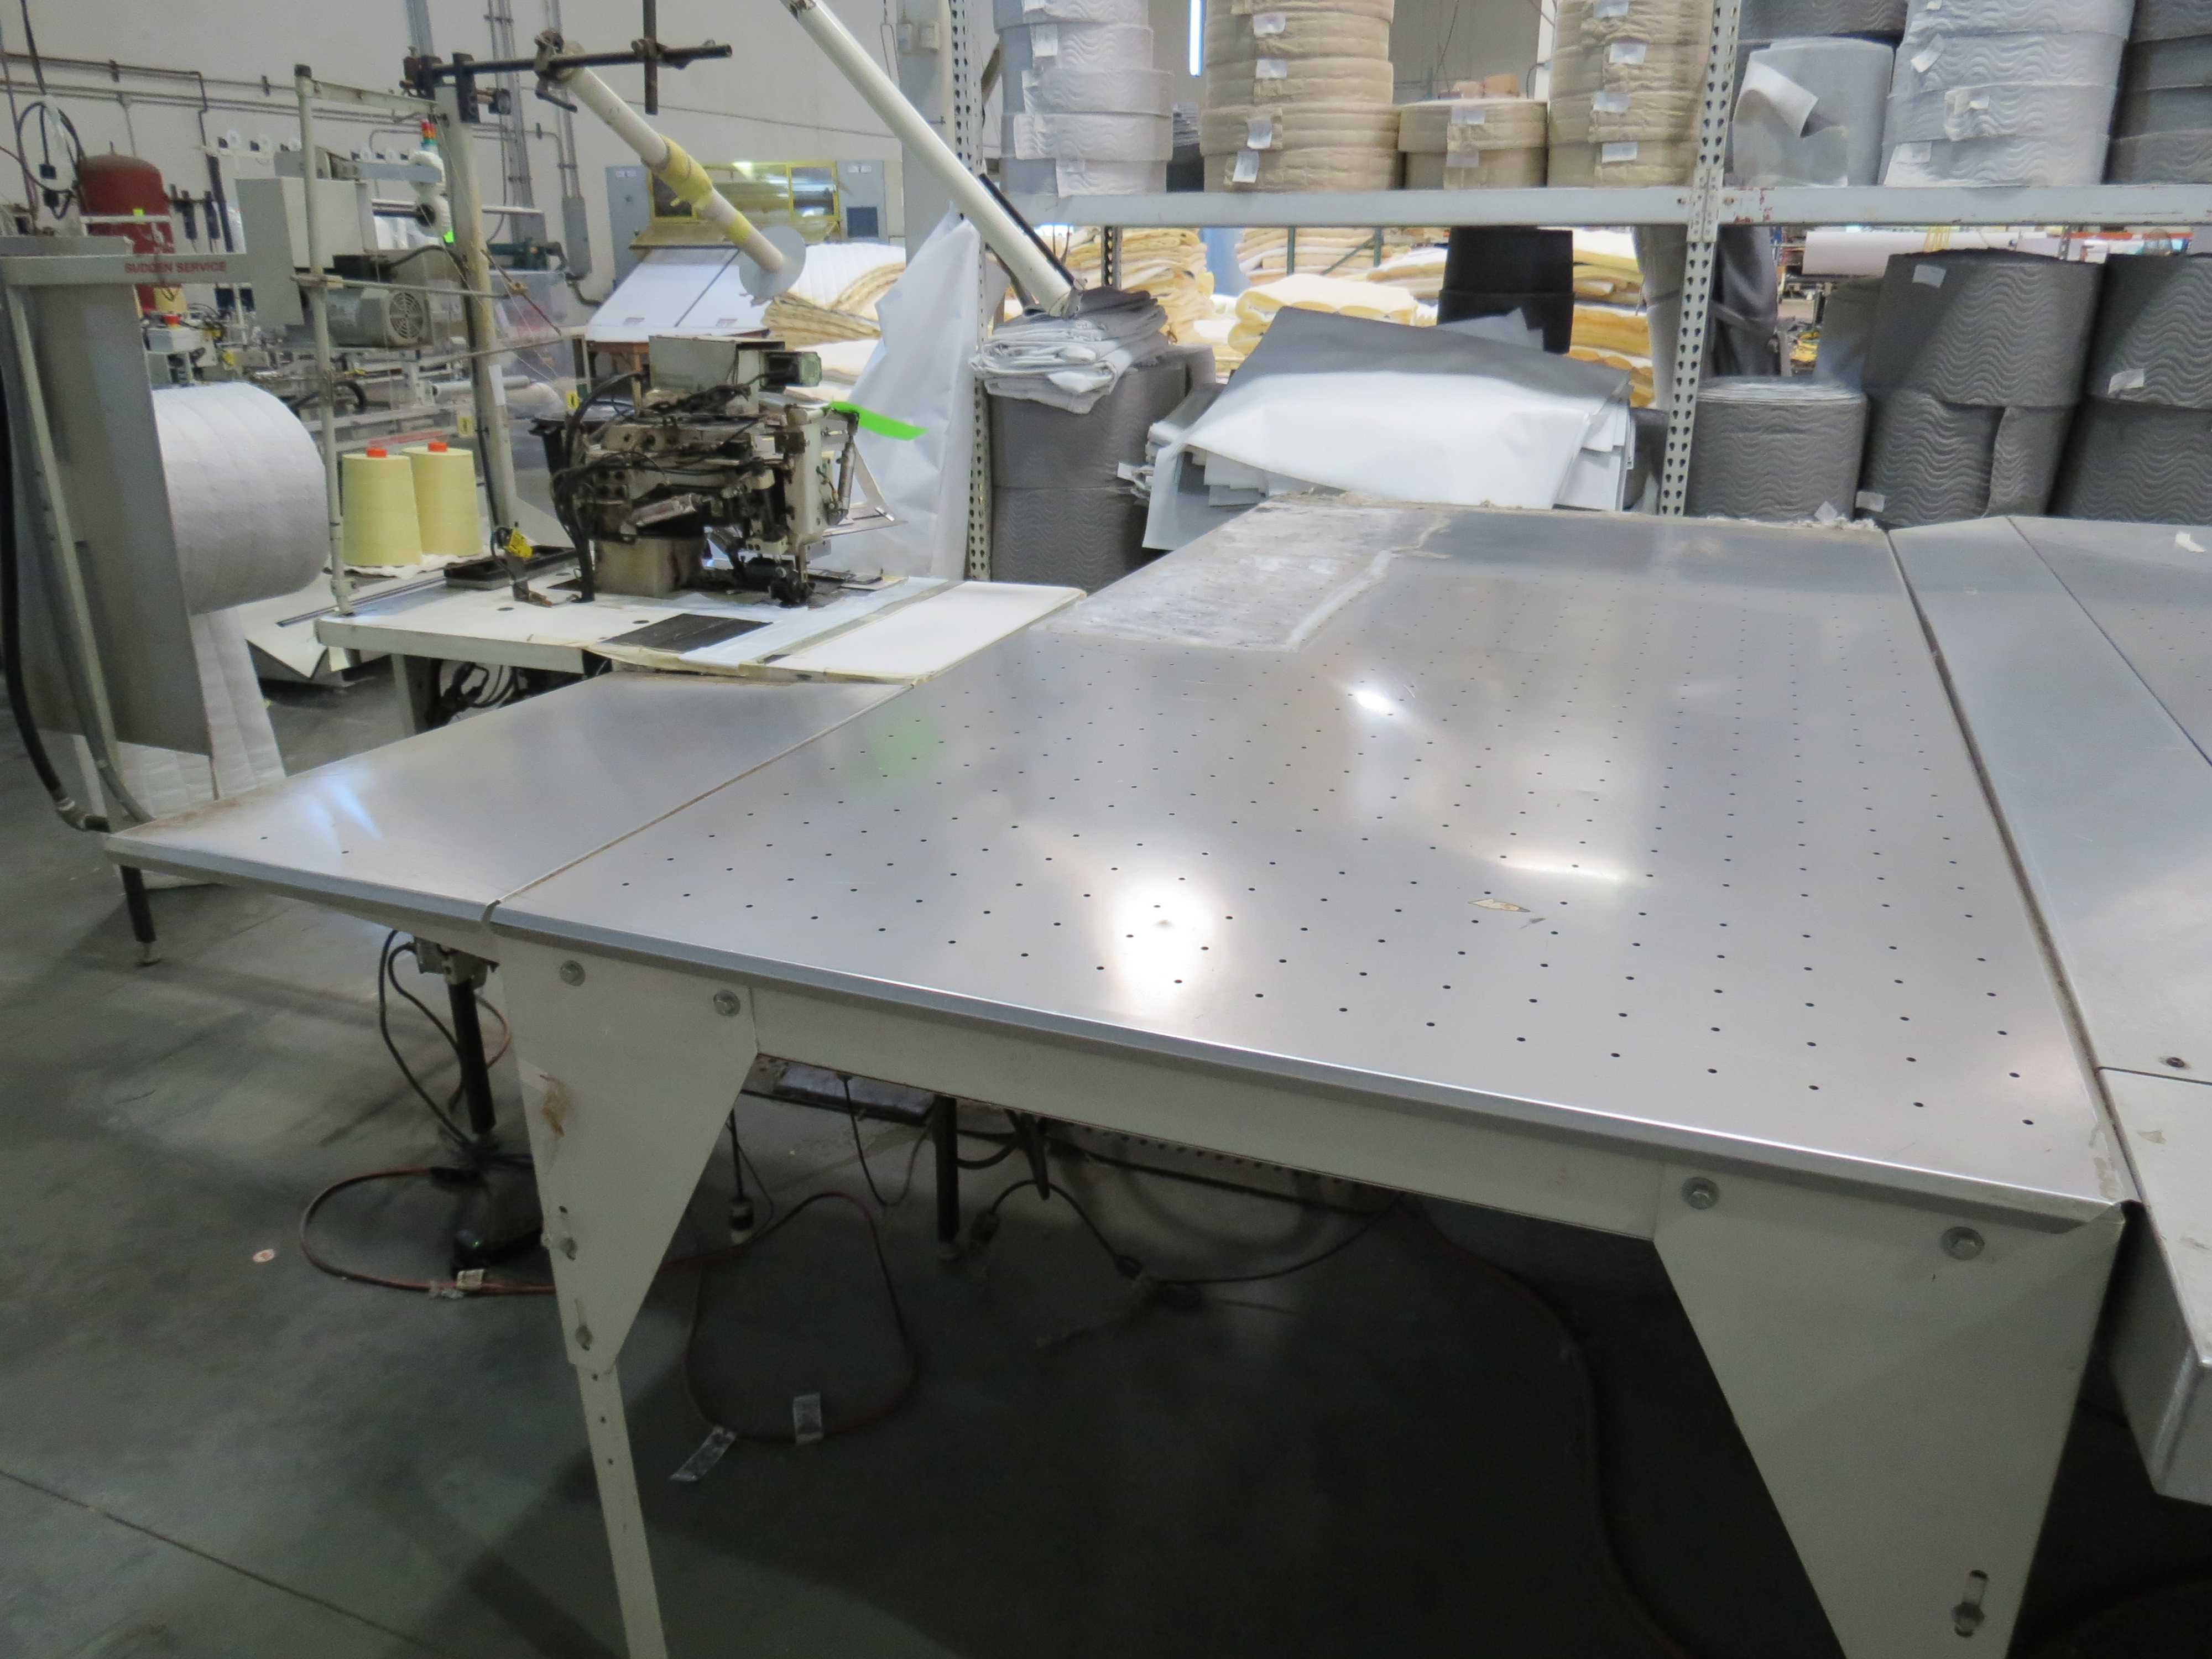 Atlanta Attachment Company VM1804P-NG-002 Ruffling Sewing Machine with Flotation Table 4' x 8' - Image 5 of 6